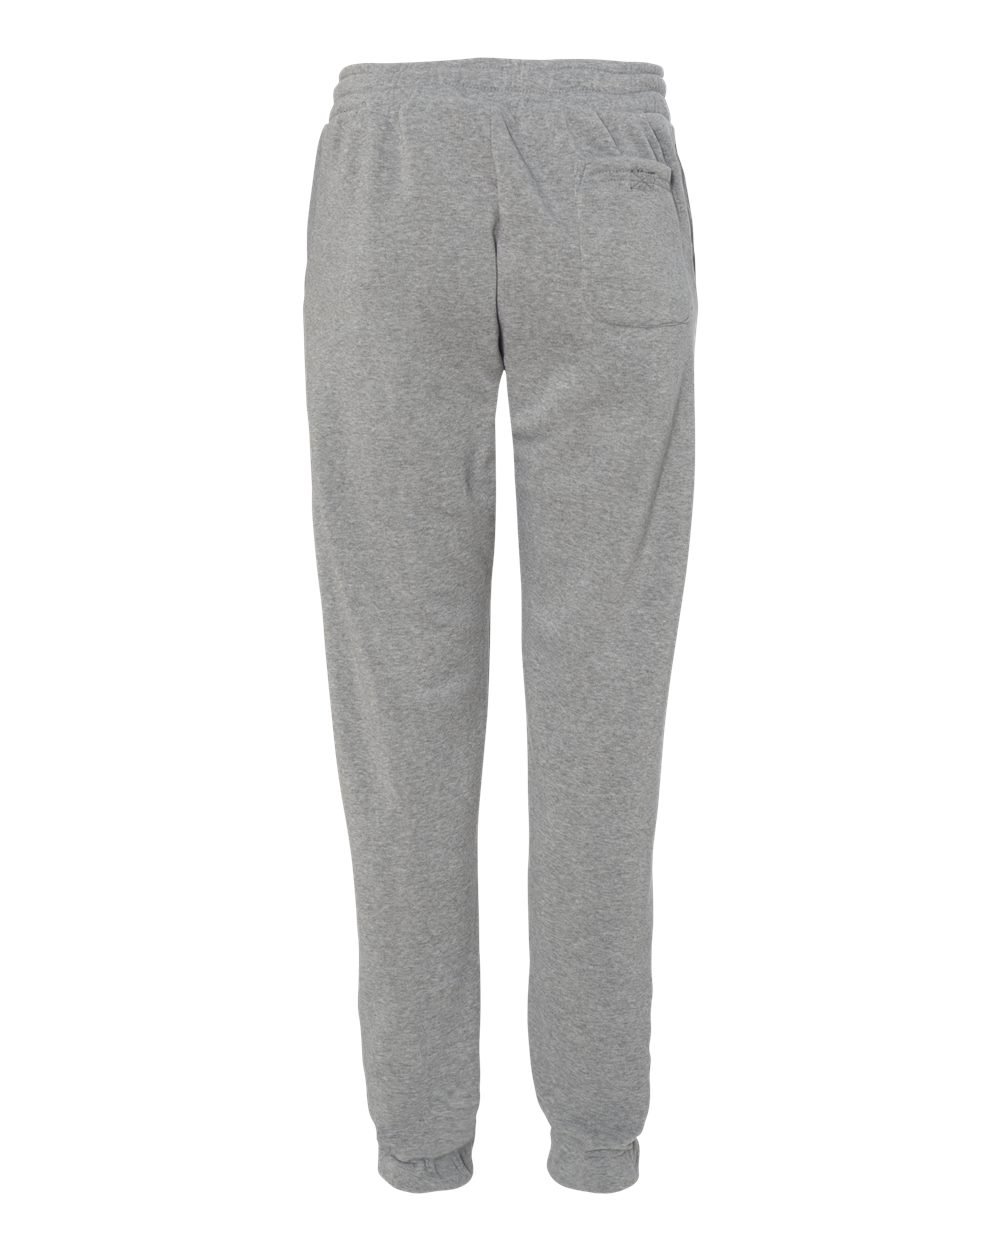 Burnside-Mens-Sweatpants-Fleece-Joggers-With-Pockets-8800-up-to-3XL thumbnail 13